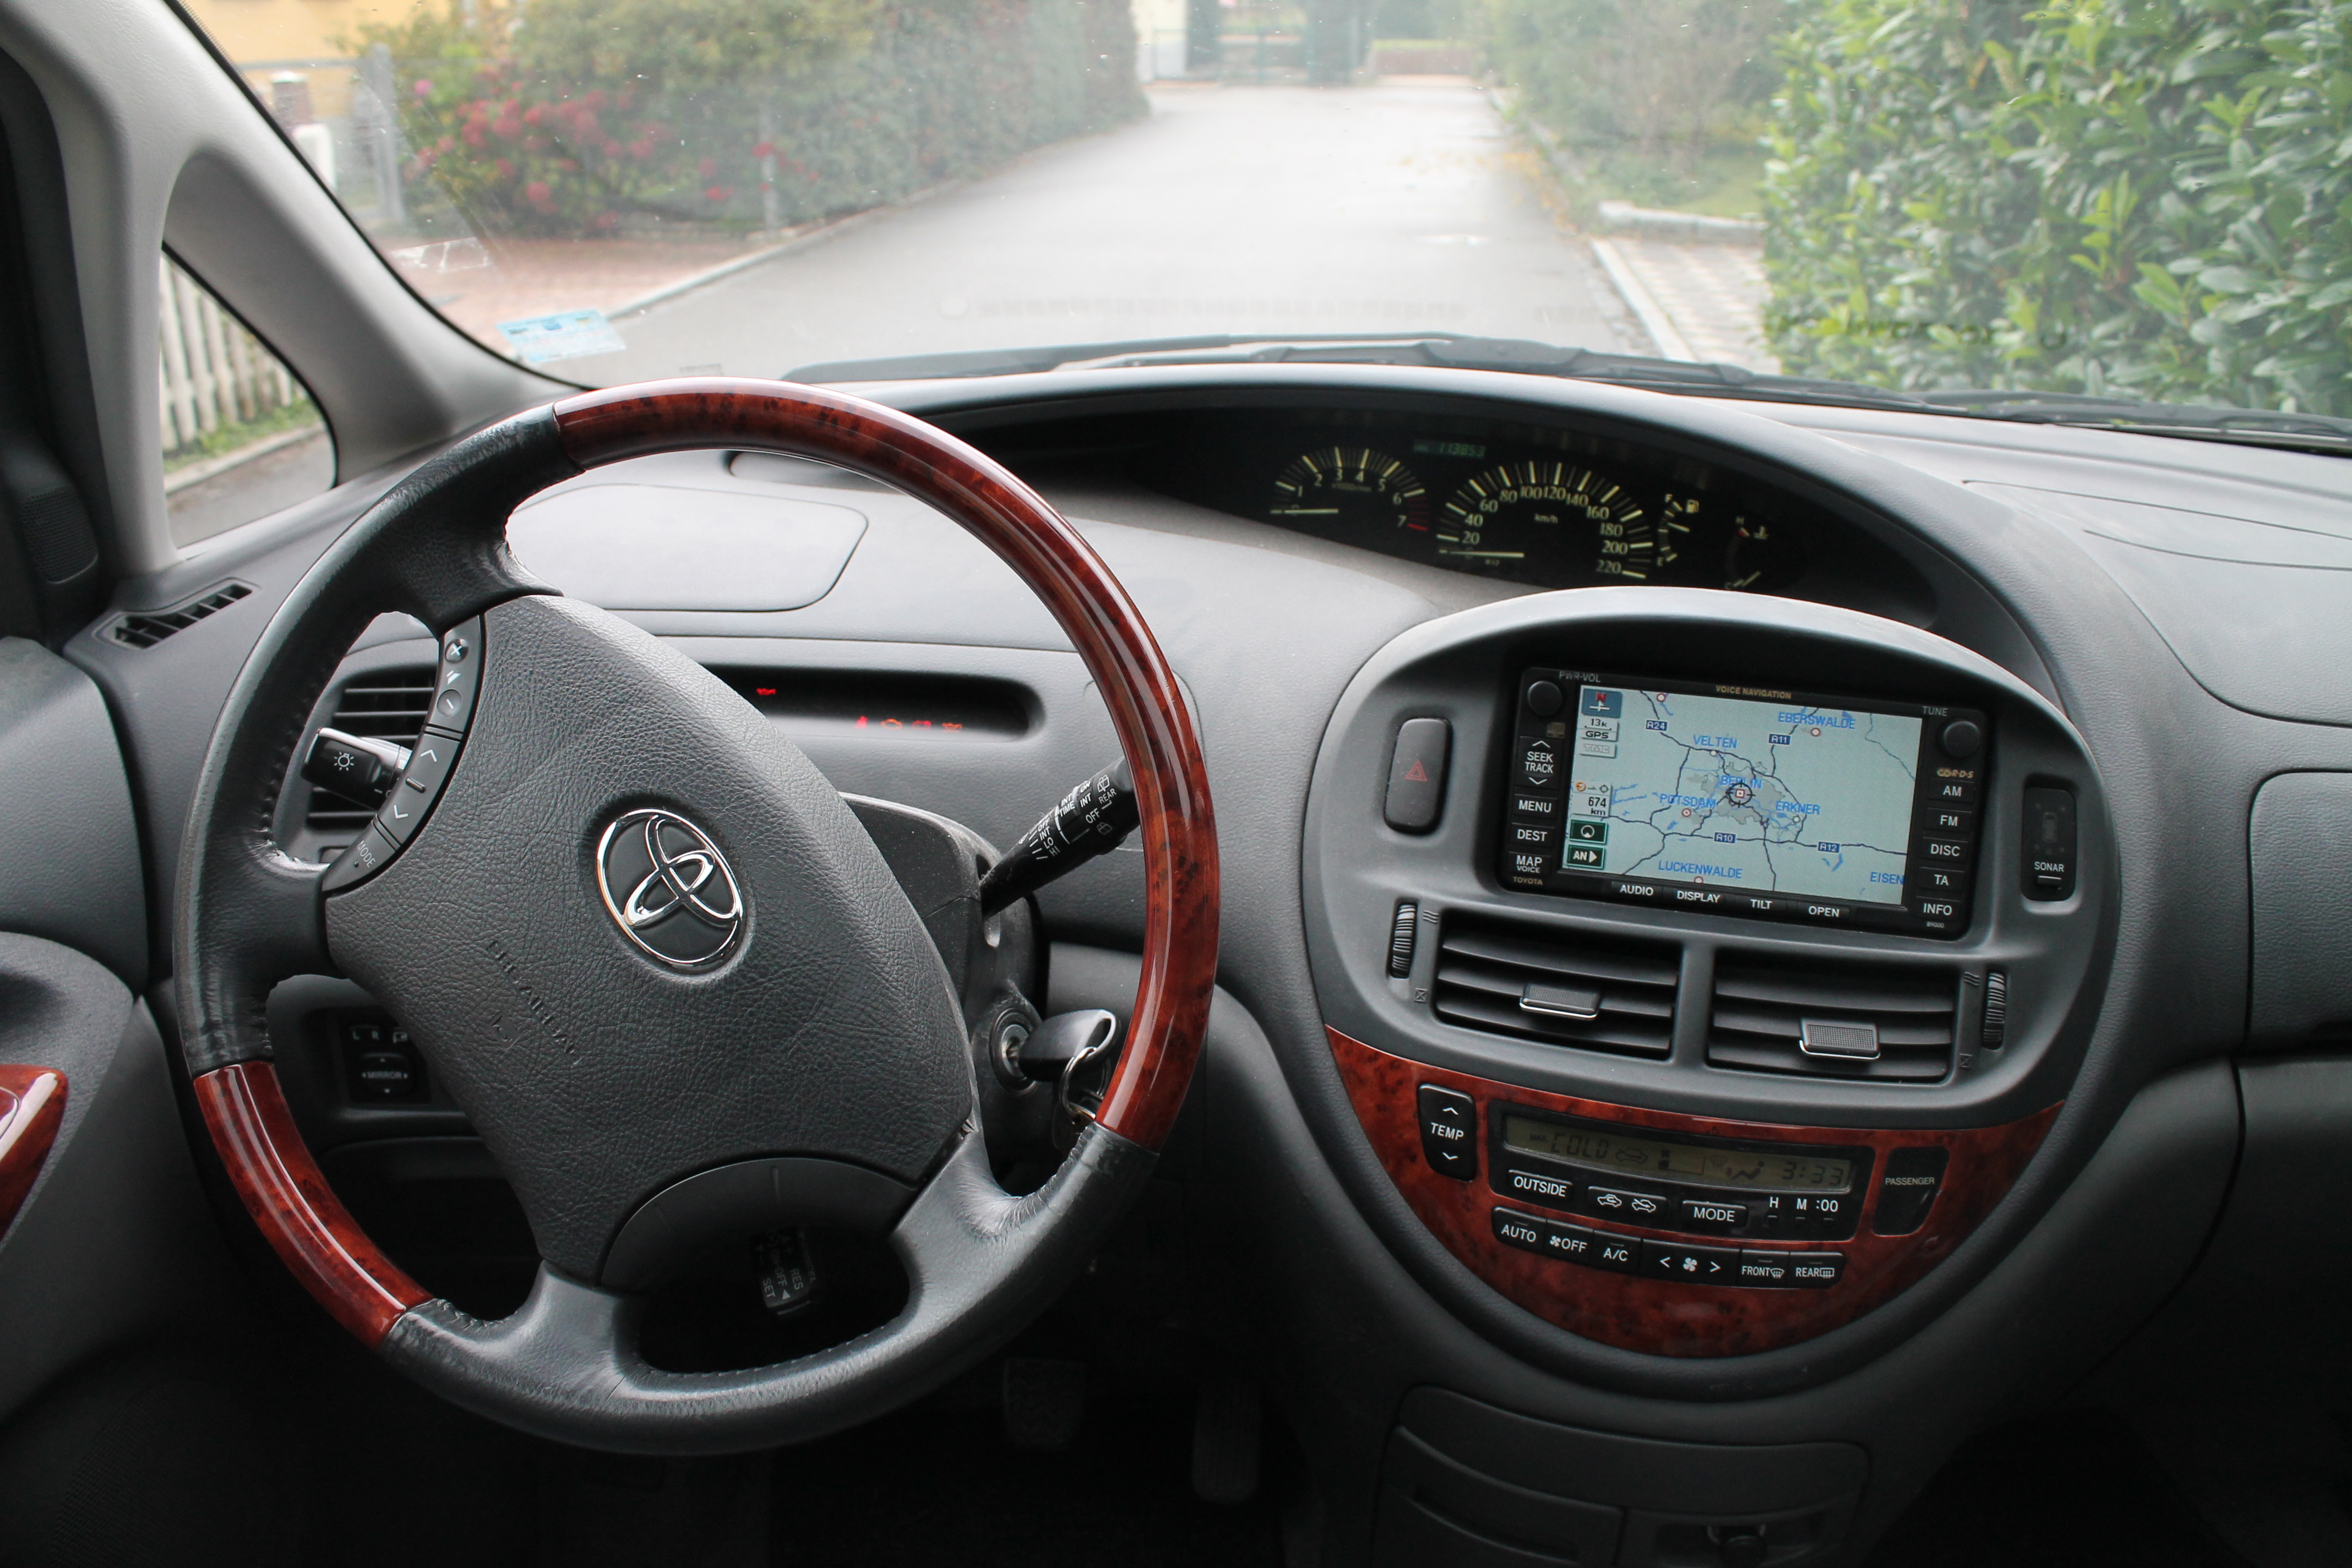 Datei:Toyota Previa 2nd generation Cockpit 2. – Wikipedia